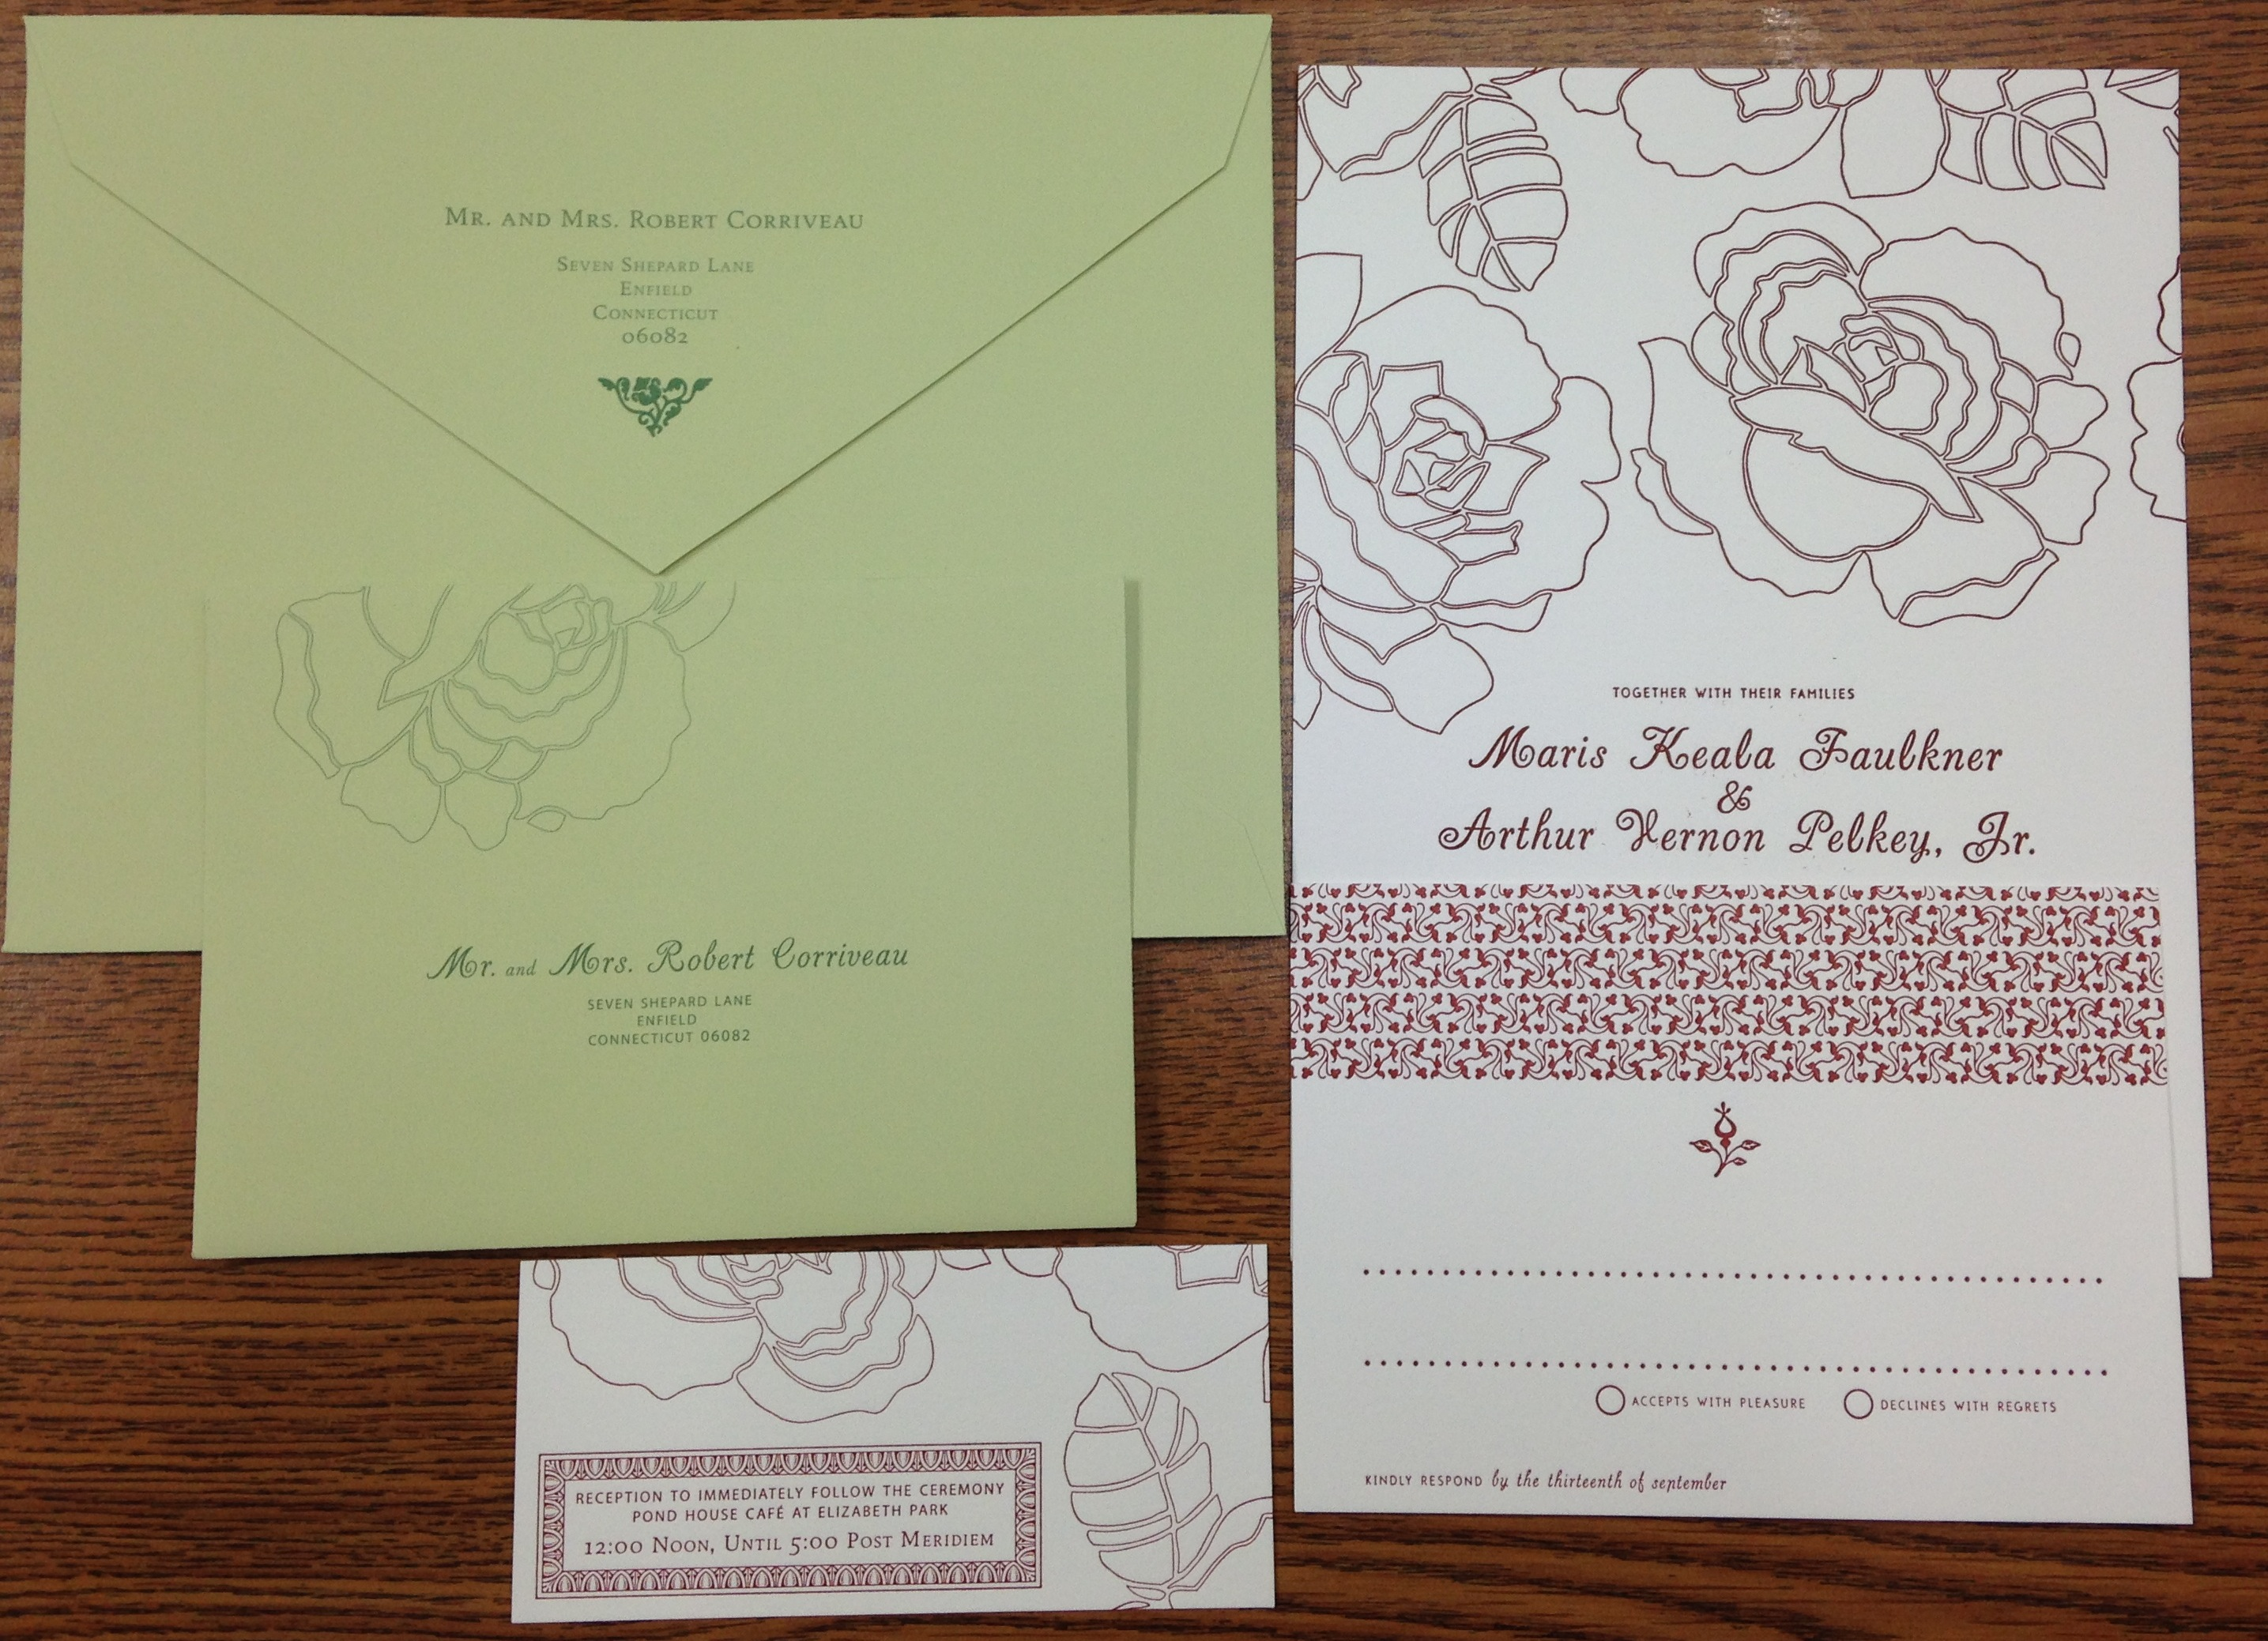 wedding invites helpful tips cannelli printing company With wedding invitation printing tips